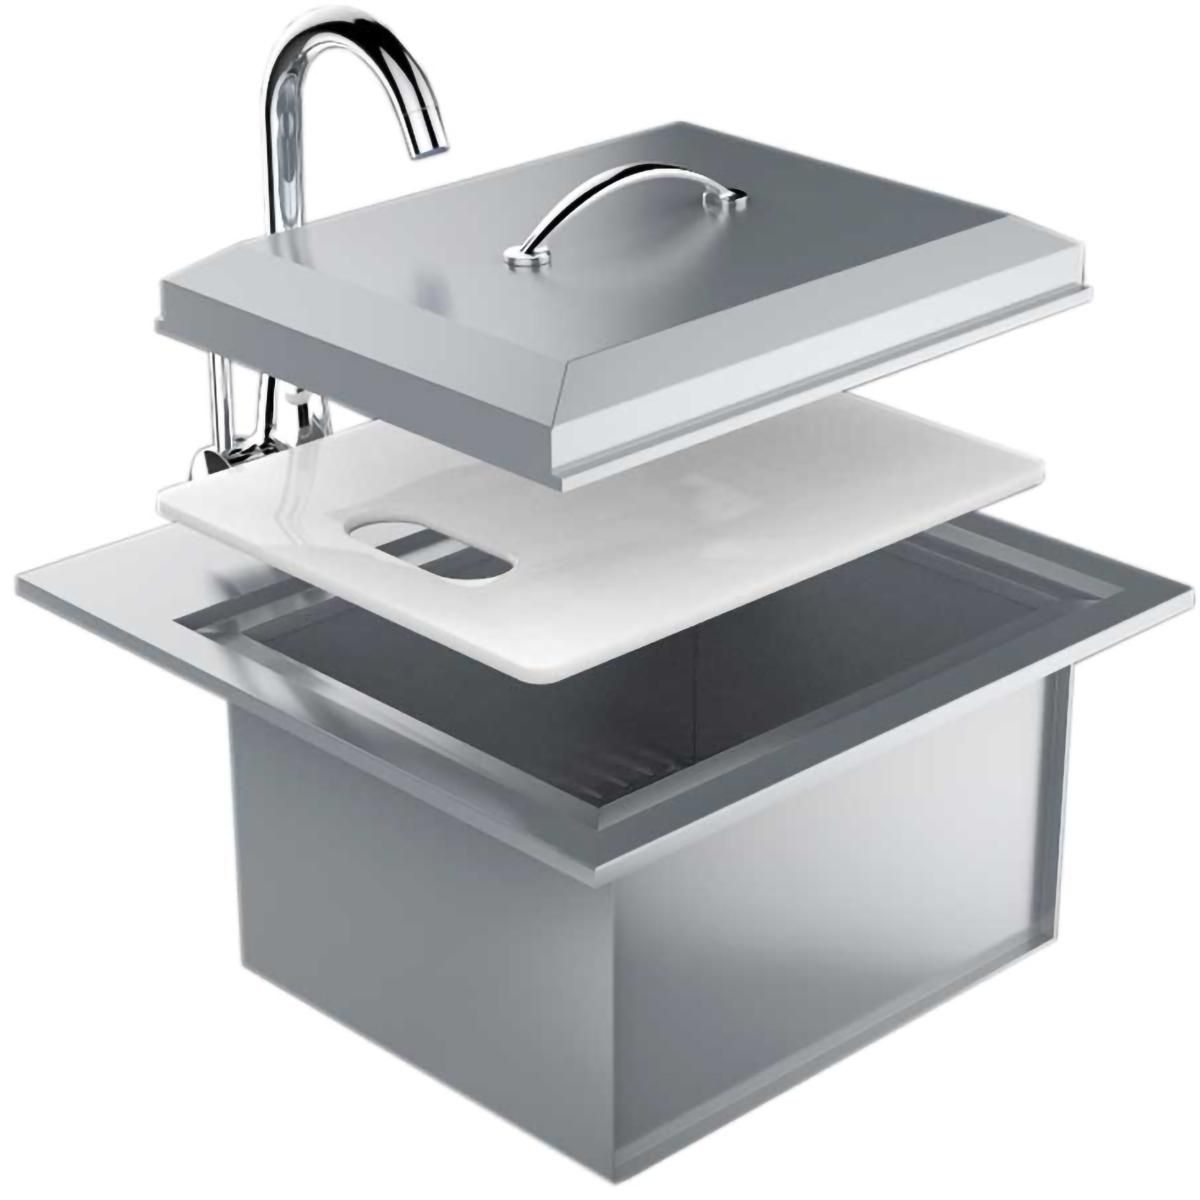 Sunstone Premium 21 X 20 Outdoor Rated Stainless Steel Drop In